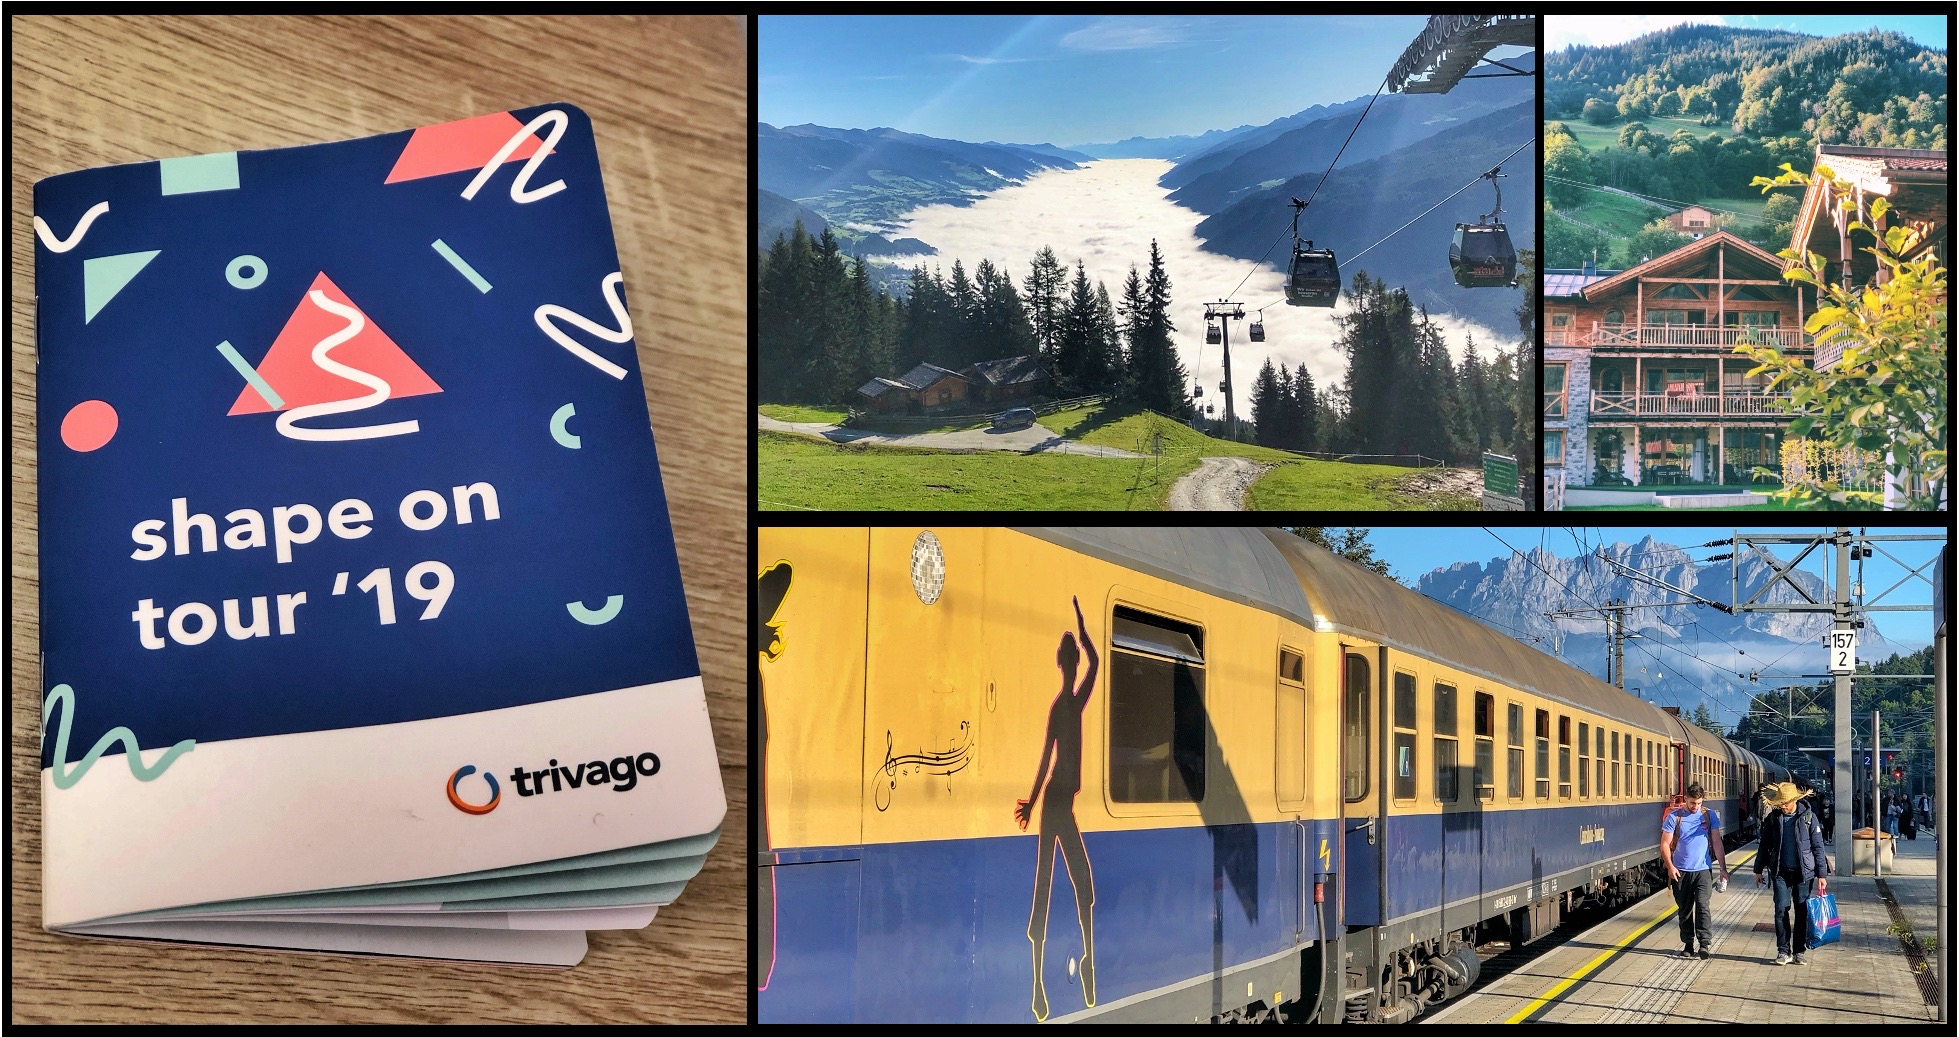 trivago-village: Alps | On-tour '19 throwback!